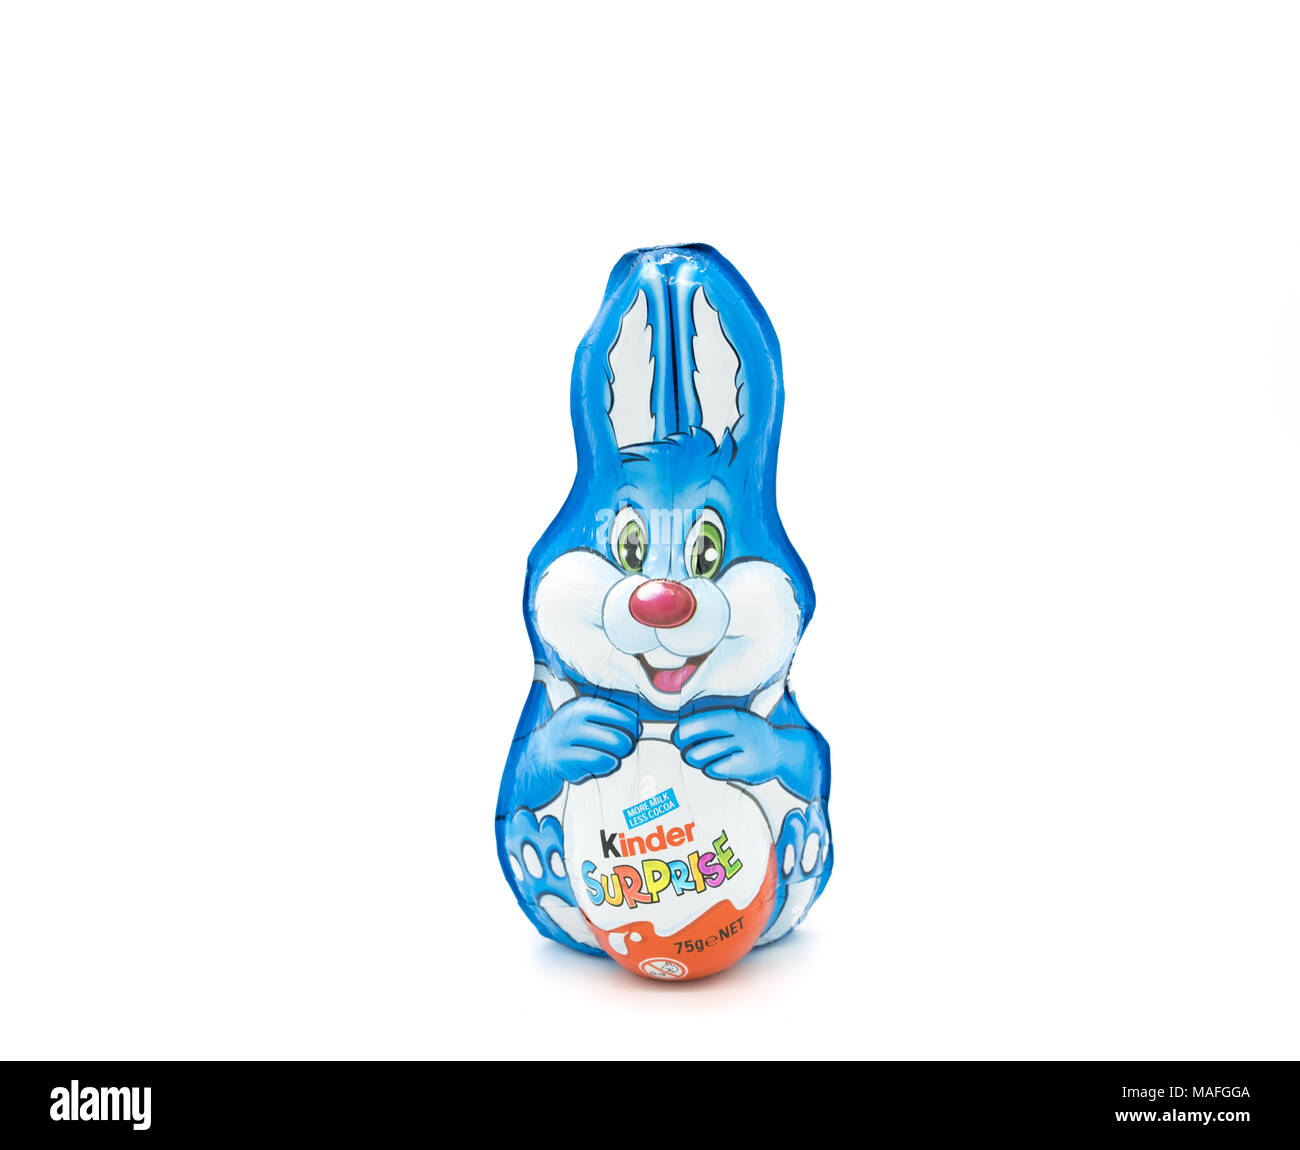 Largs, Scotland, UK - March 31, 2018: Foil Wrapped Kinder Egg Rabbit. Recent reportage about wastfull packaging in relation to non recyclable plastics - Stock Image